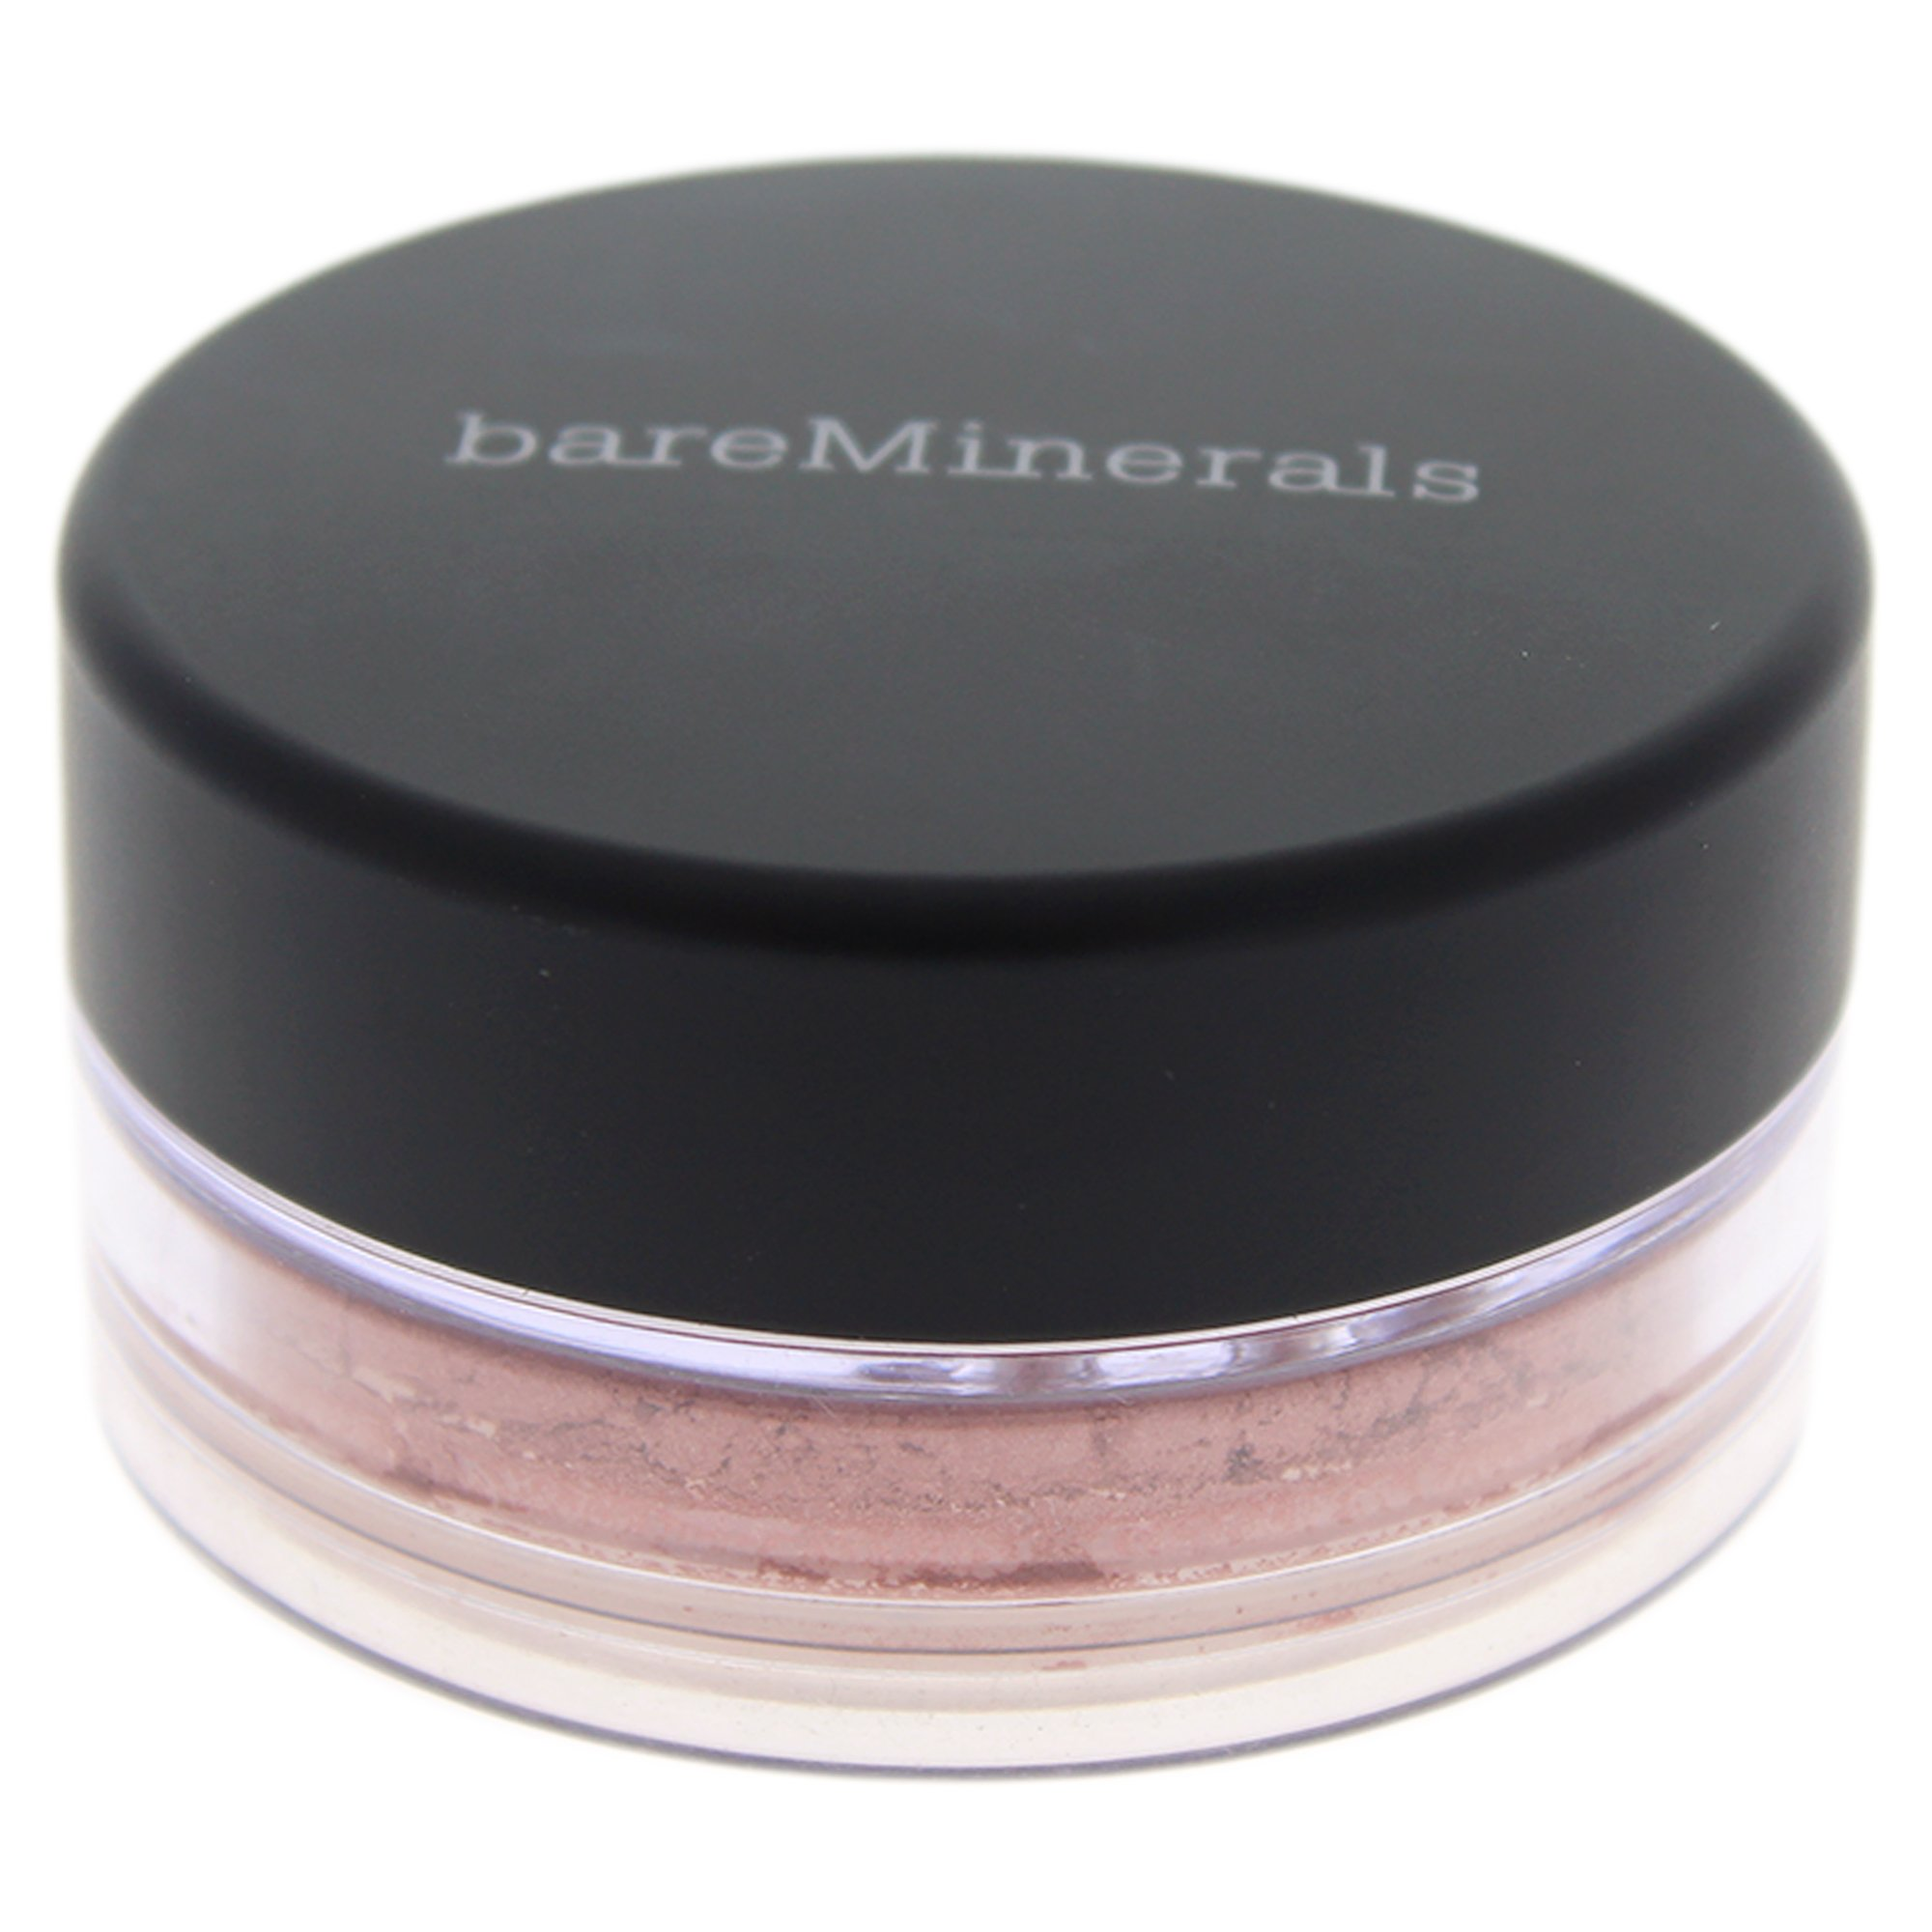 bareMinerals Rose Radiance, 0.03 Ounce by bareMinerals